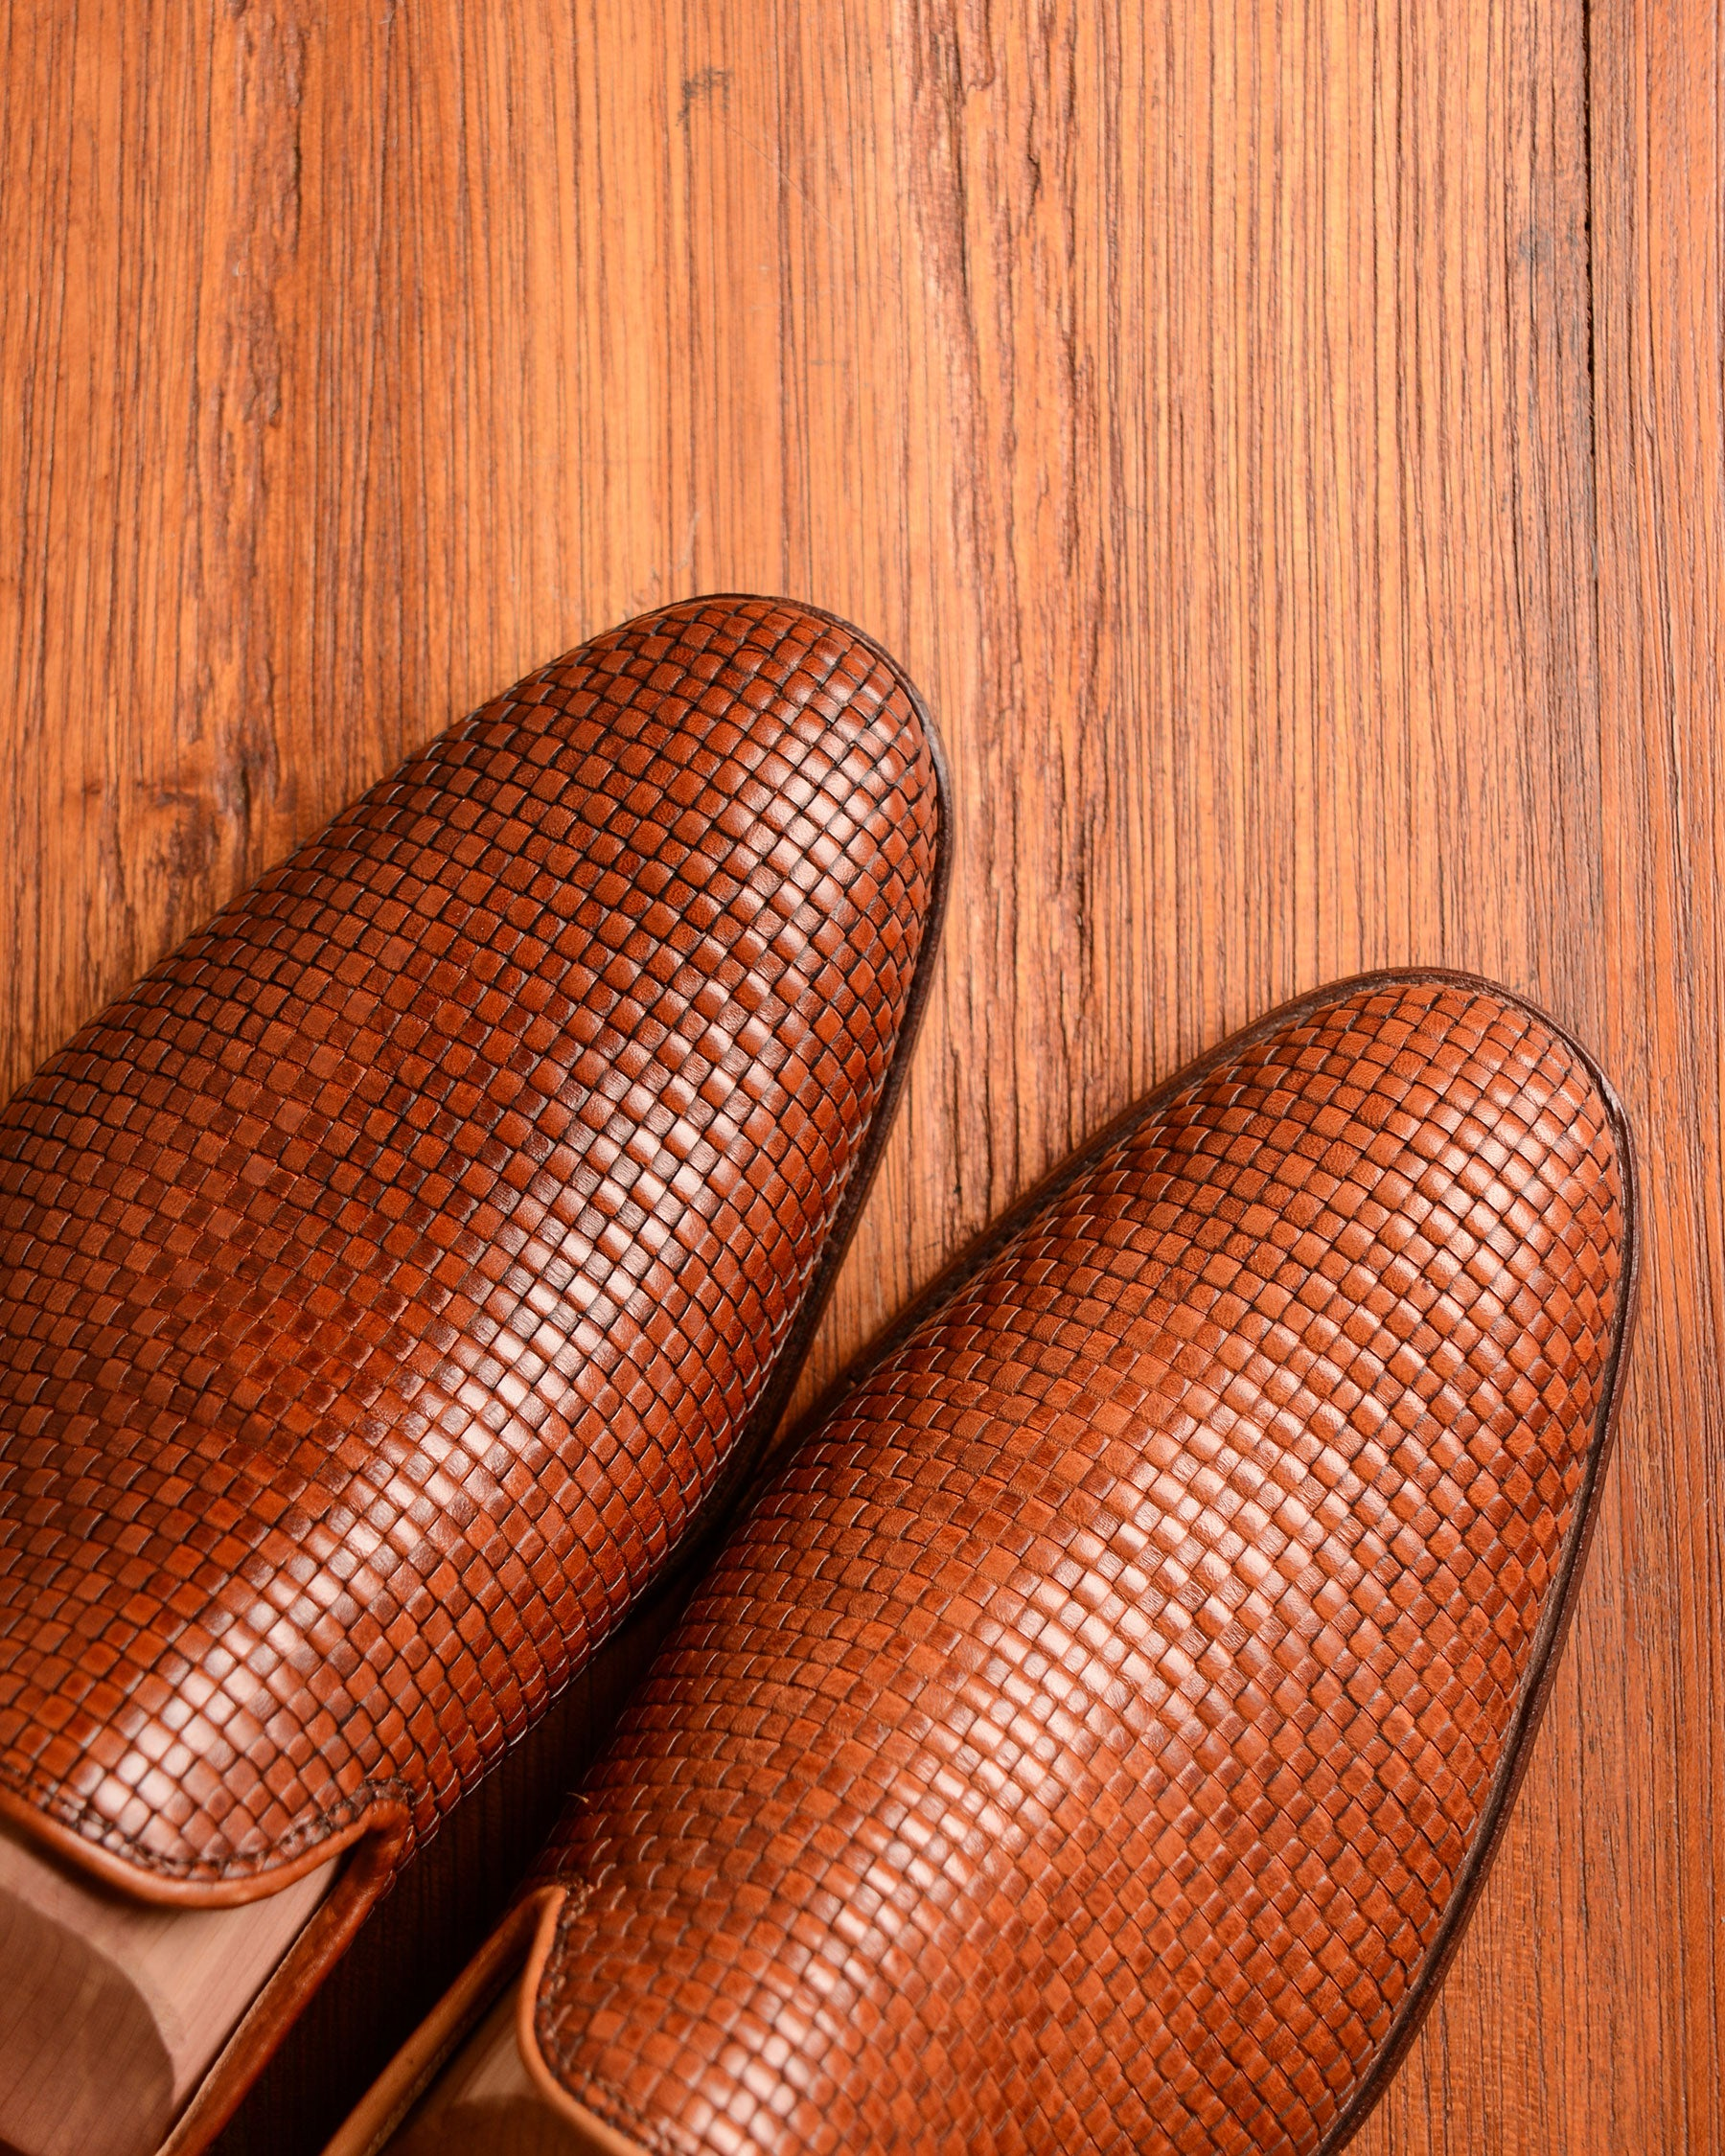 Crockett & Jones Kensington - Woven Tan Calf